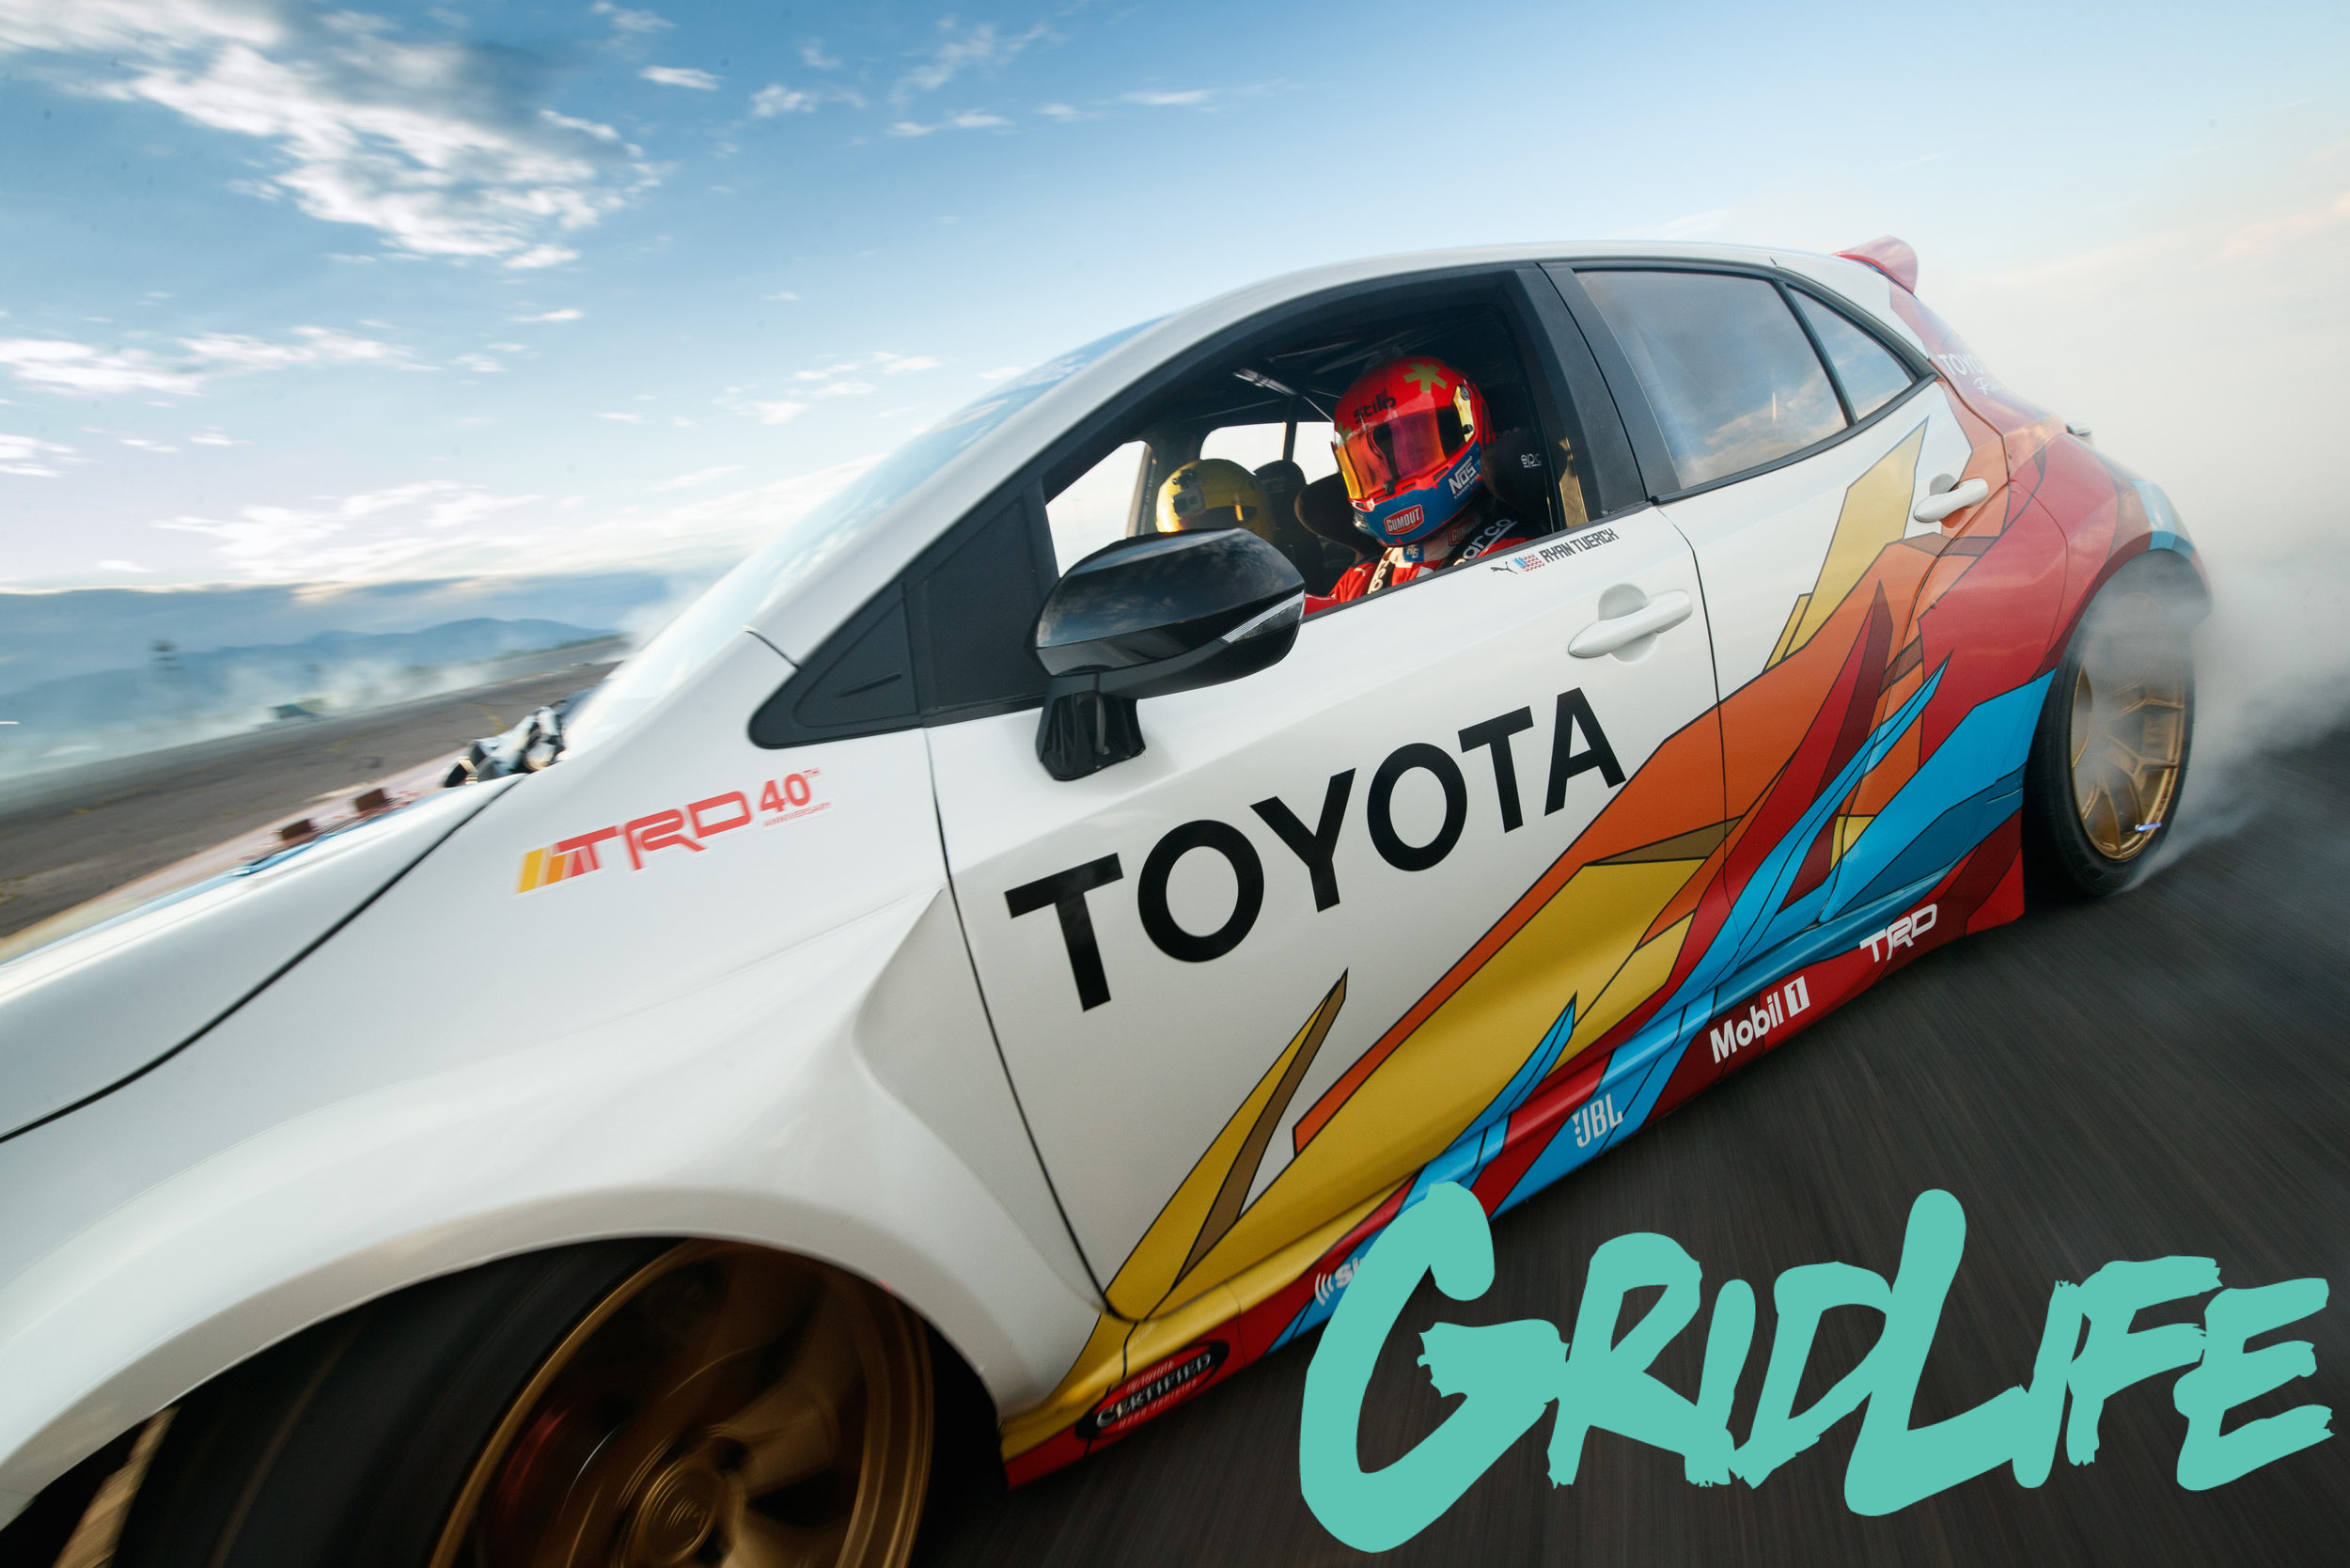 Ryan Tuerck will be sending it all weekend with the Papadakis Racing Toyota Corolla Hatchback